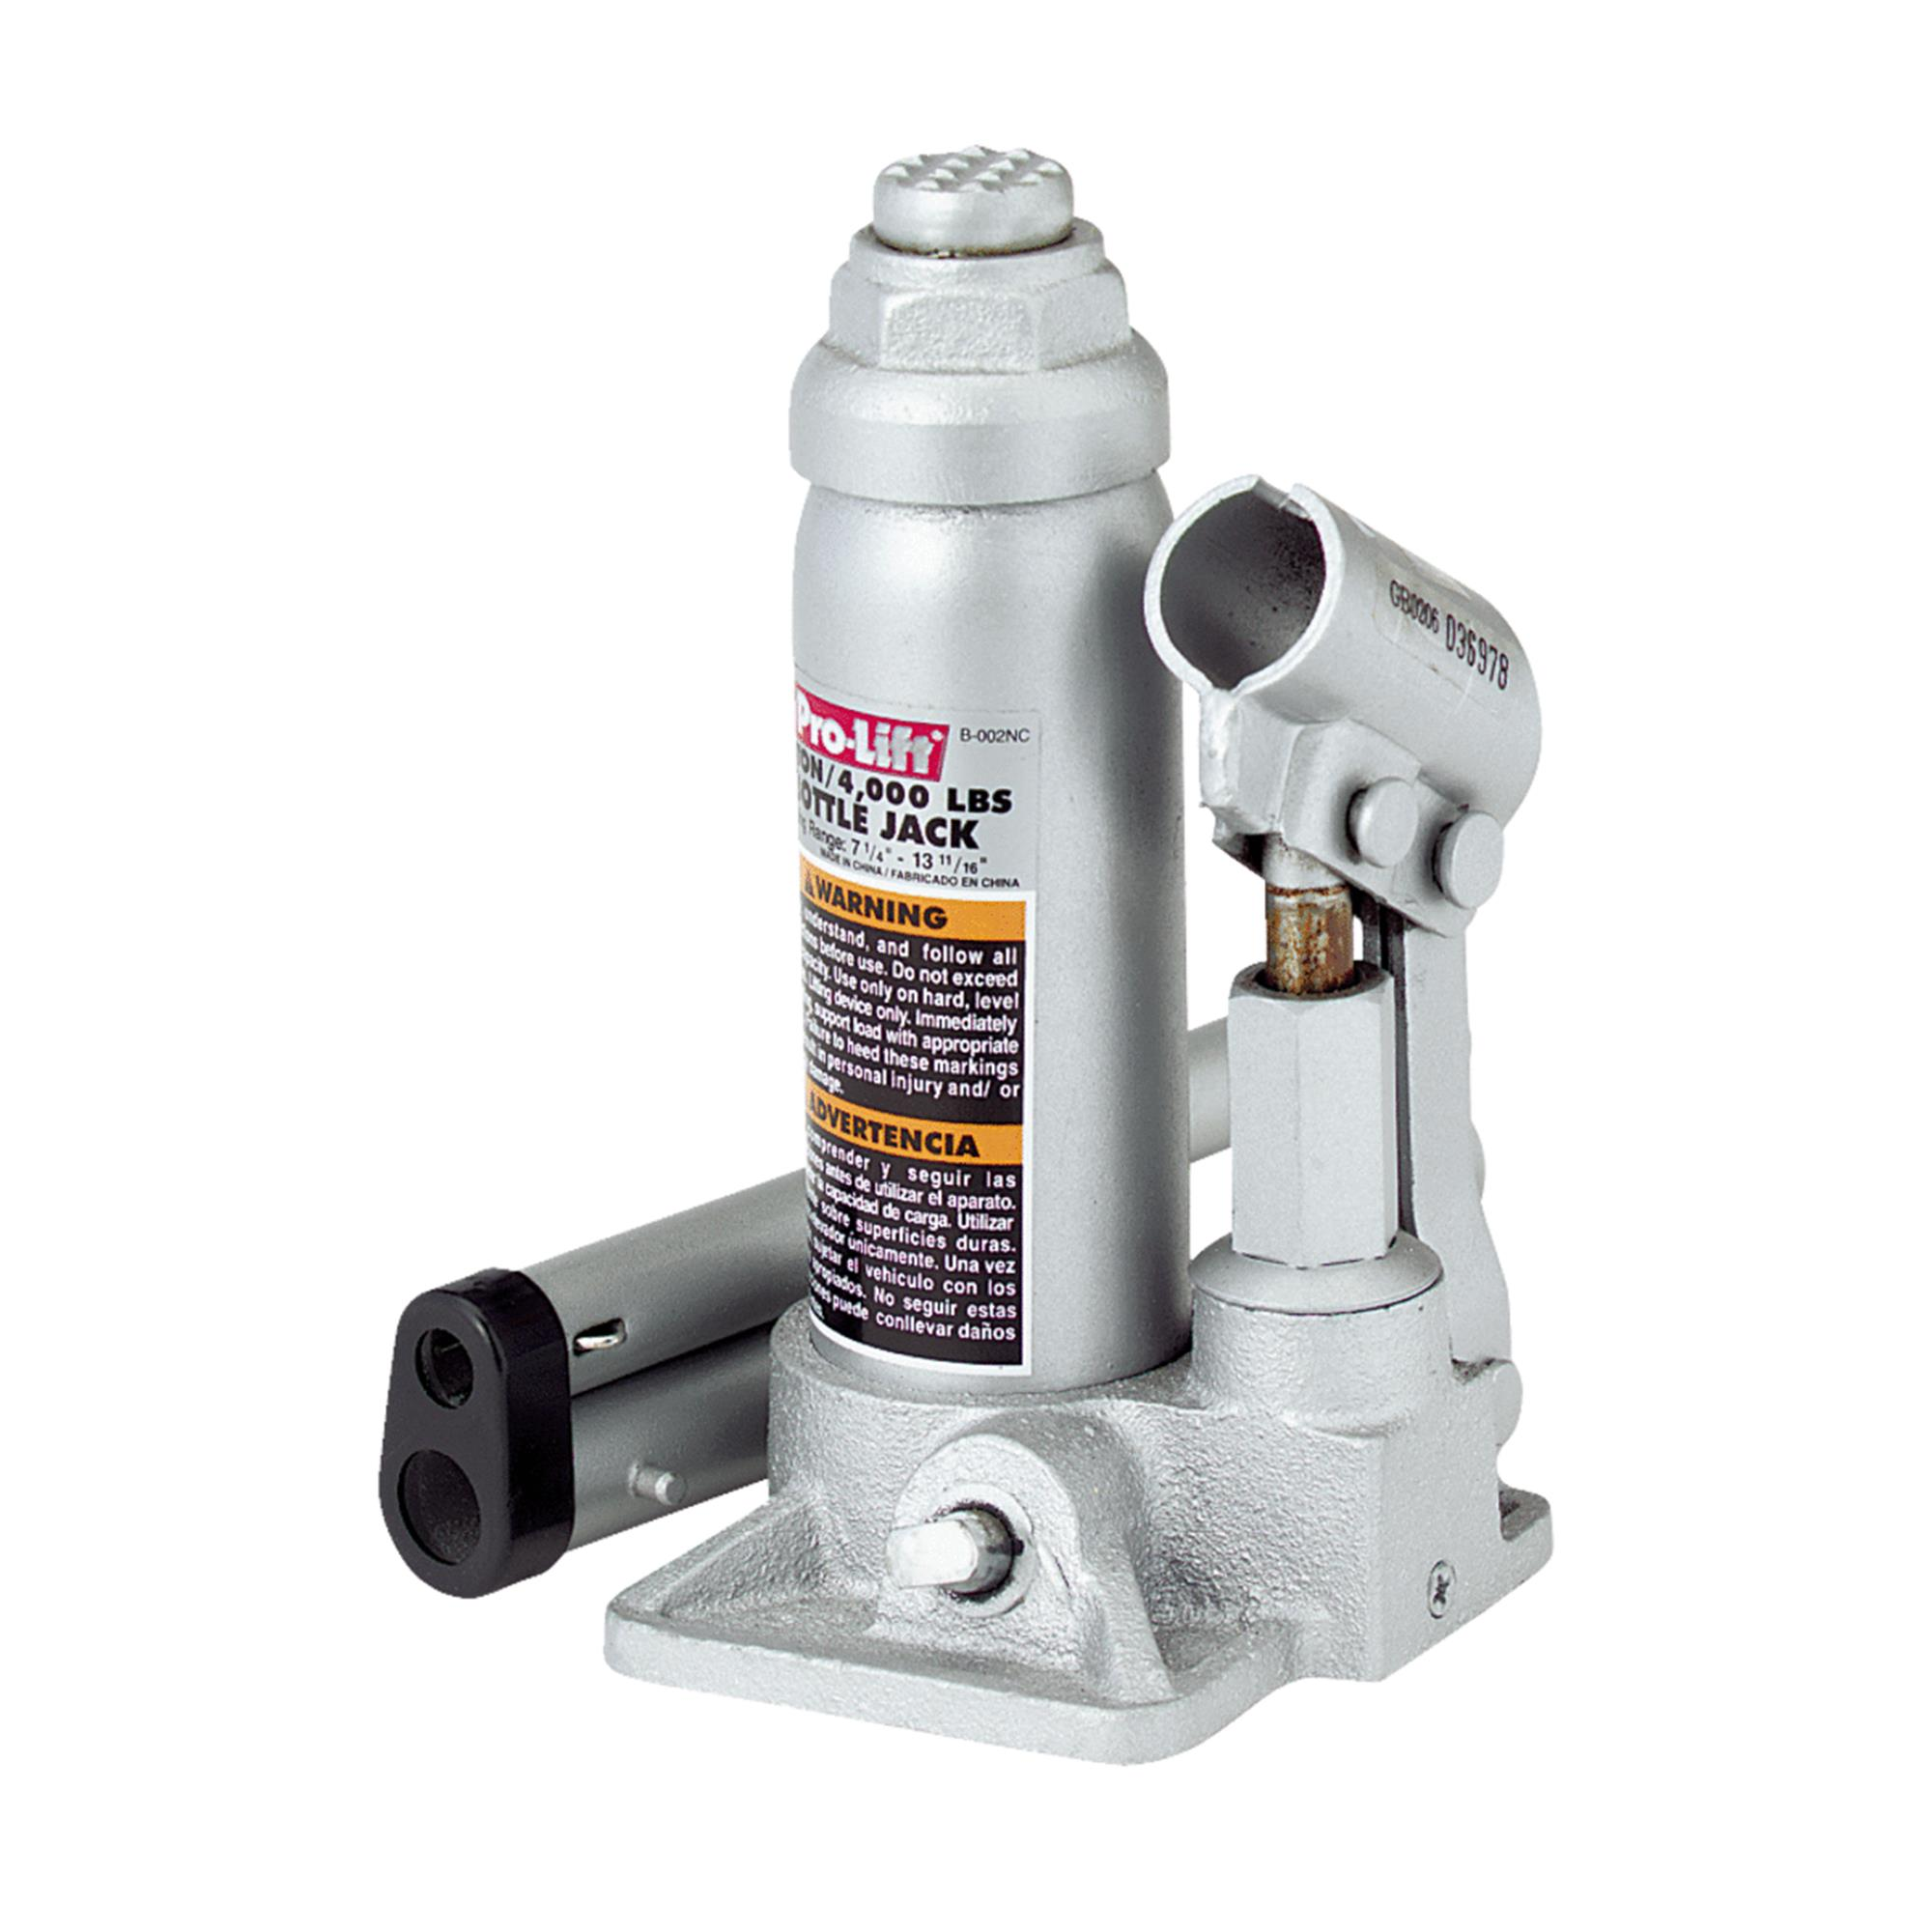 Pro-Lift B-002D Grey Hydraulic Bottle Jack, 2 Ton Capacity